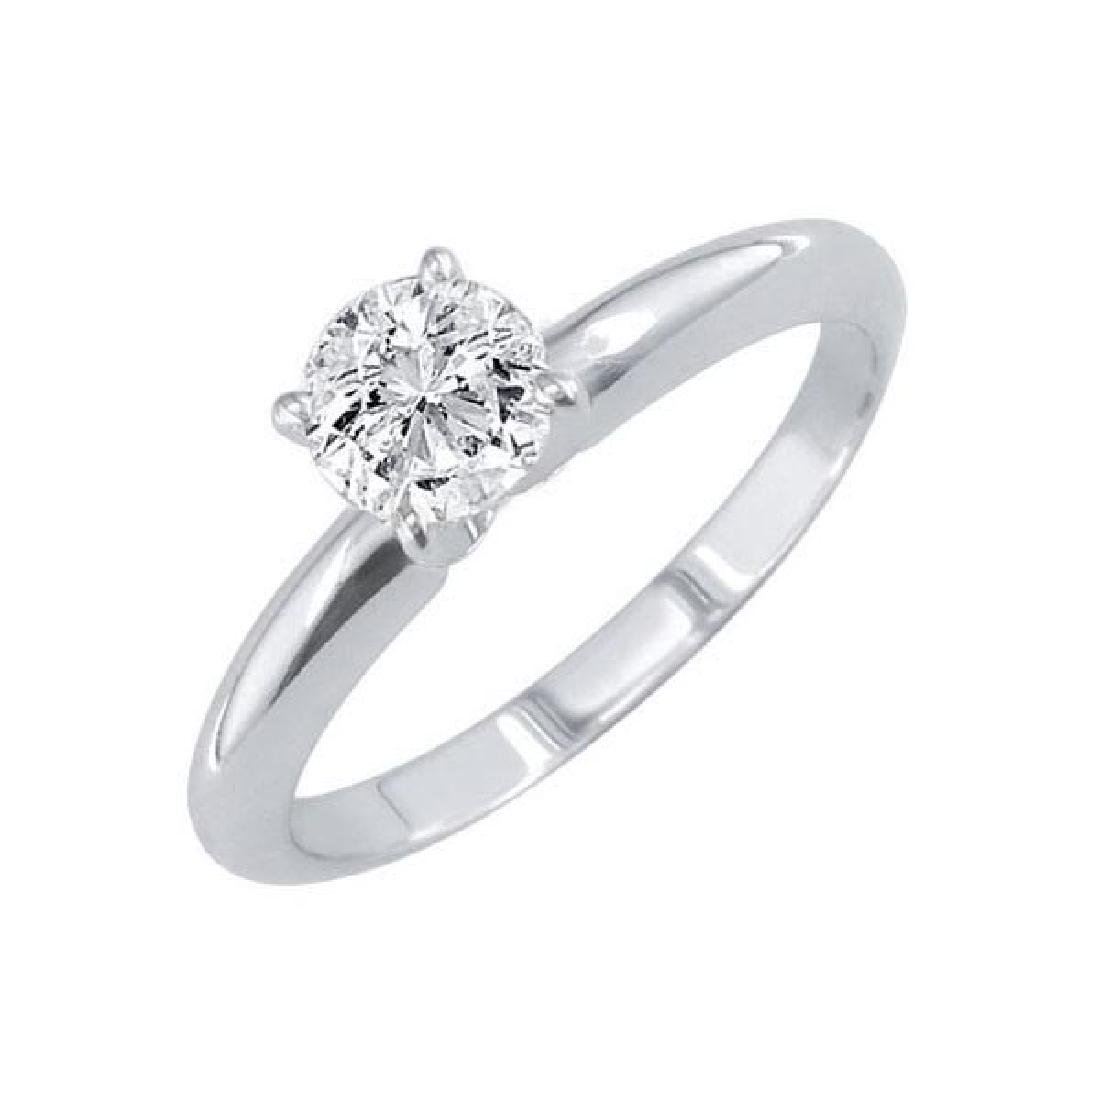 Certified 1 CTW Round Diamond Solitaire 14k Ring G/I1